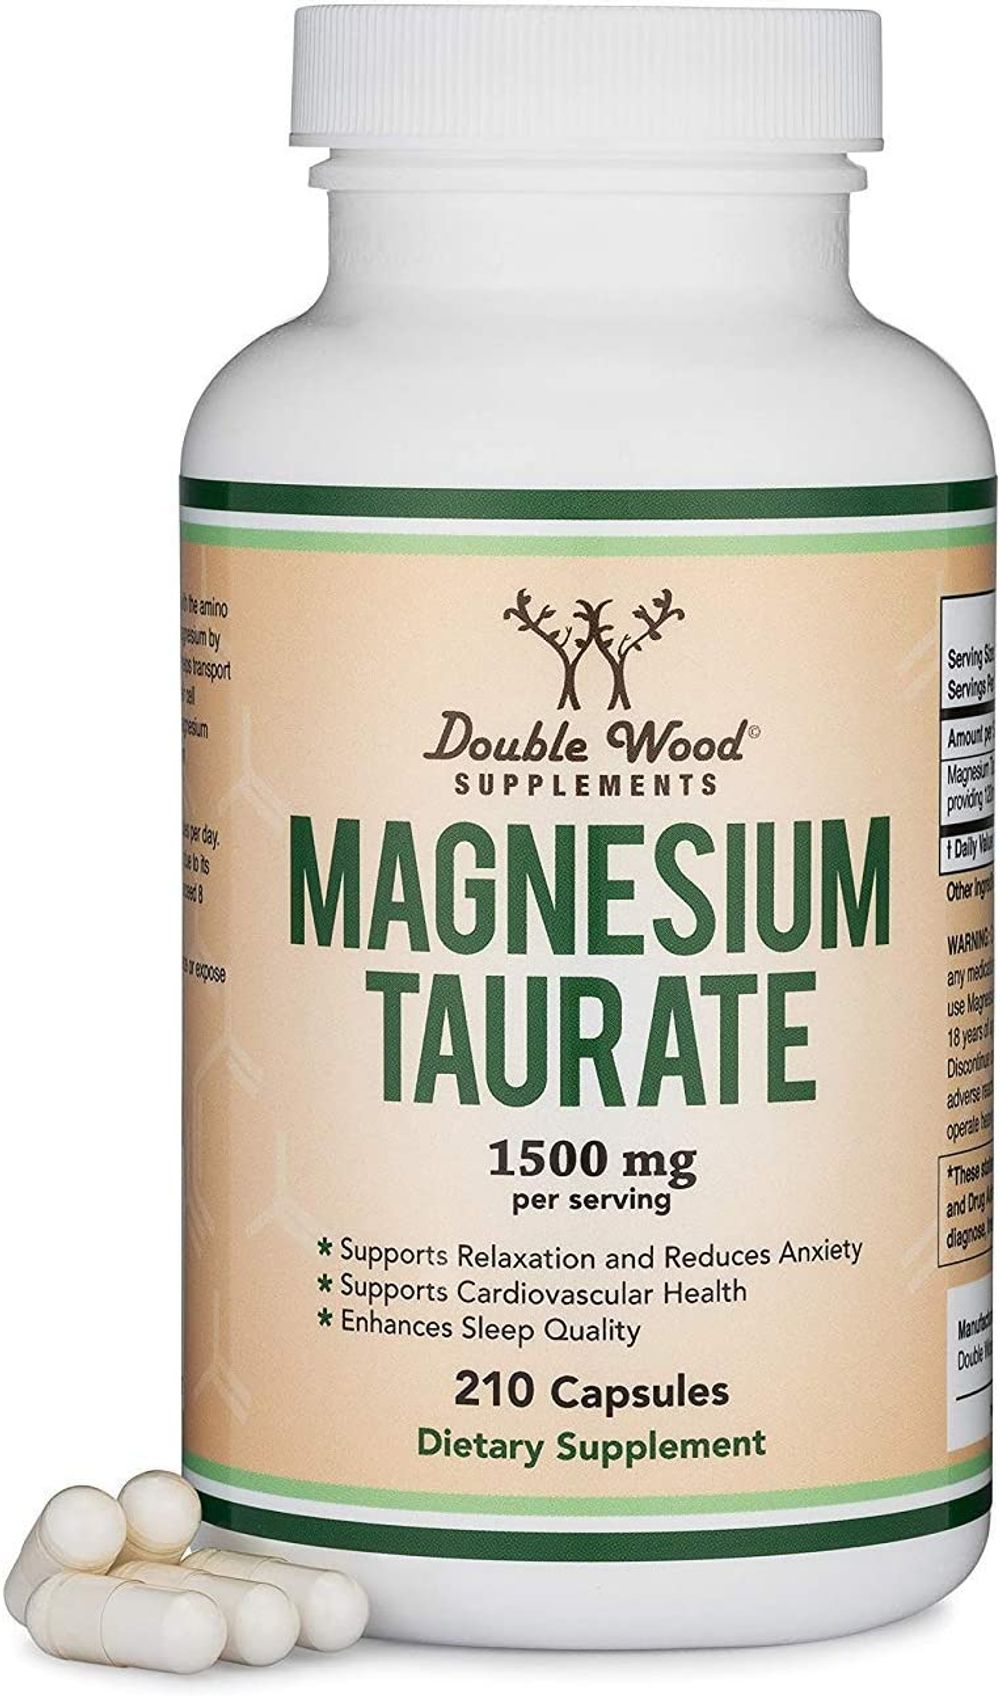 Magnesium Taurate Supplement for Sleep, Calming, and Cardiovascular Support (1,500mg per Serving, 210 Vegan Capsules) Made in USA, by Double Wood Supplements